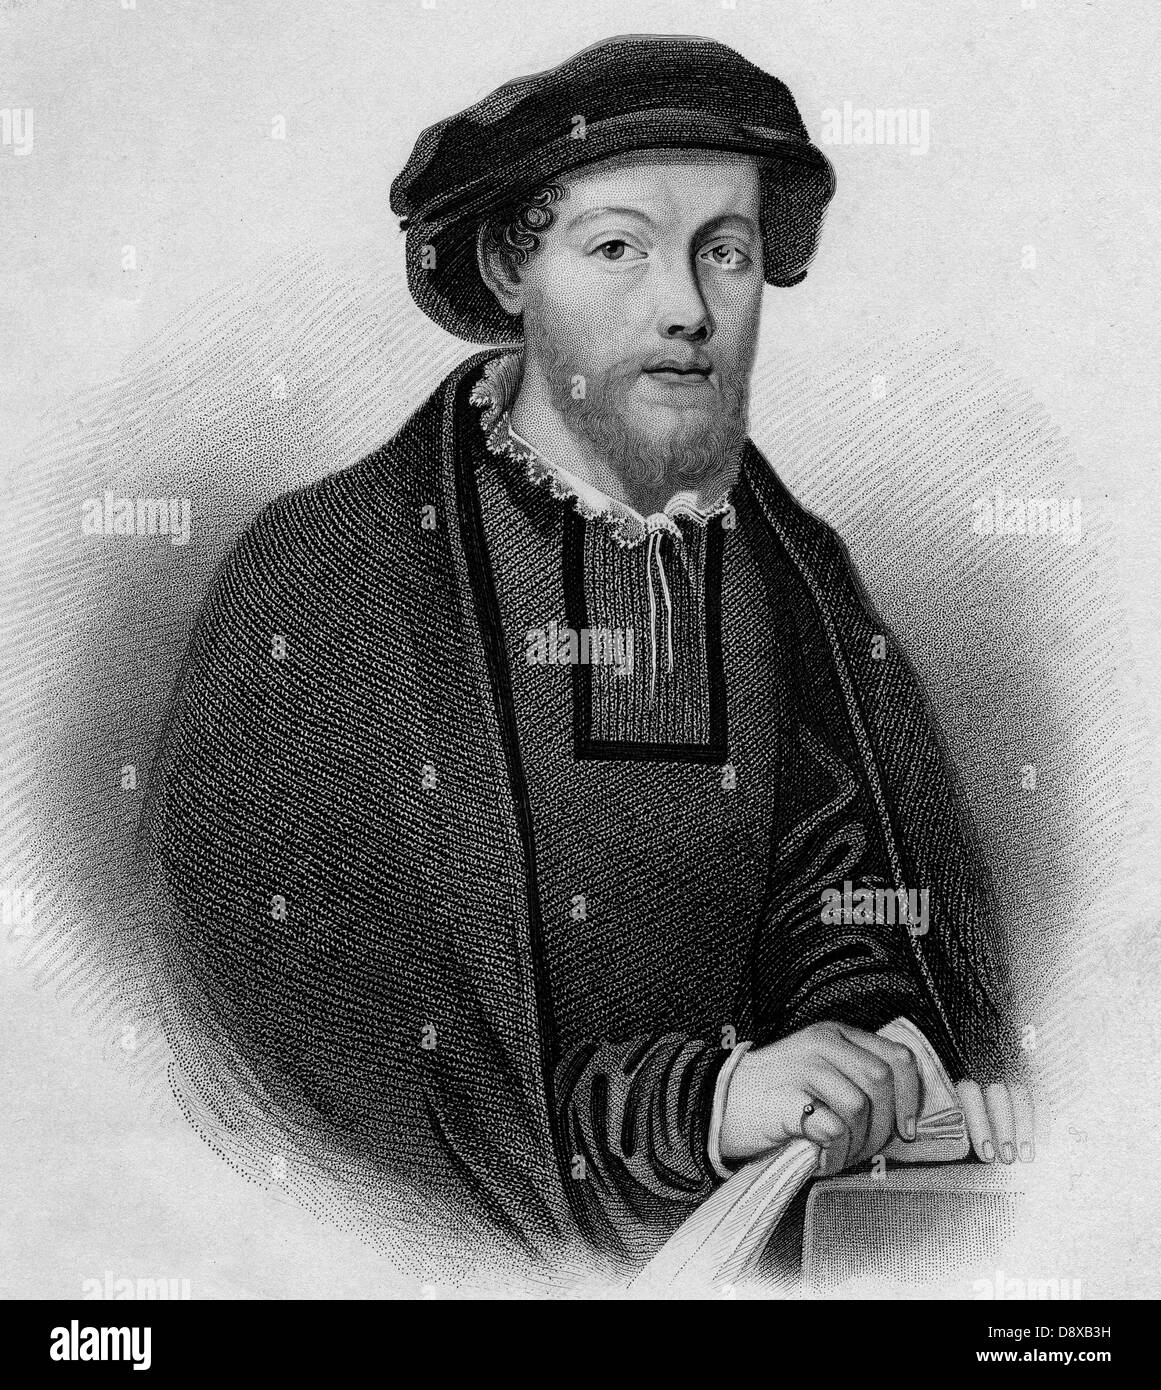 George Wishart (1513 – 1546), Scottish religious reformer and Protestant martyr. - Stock Image